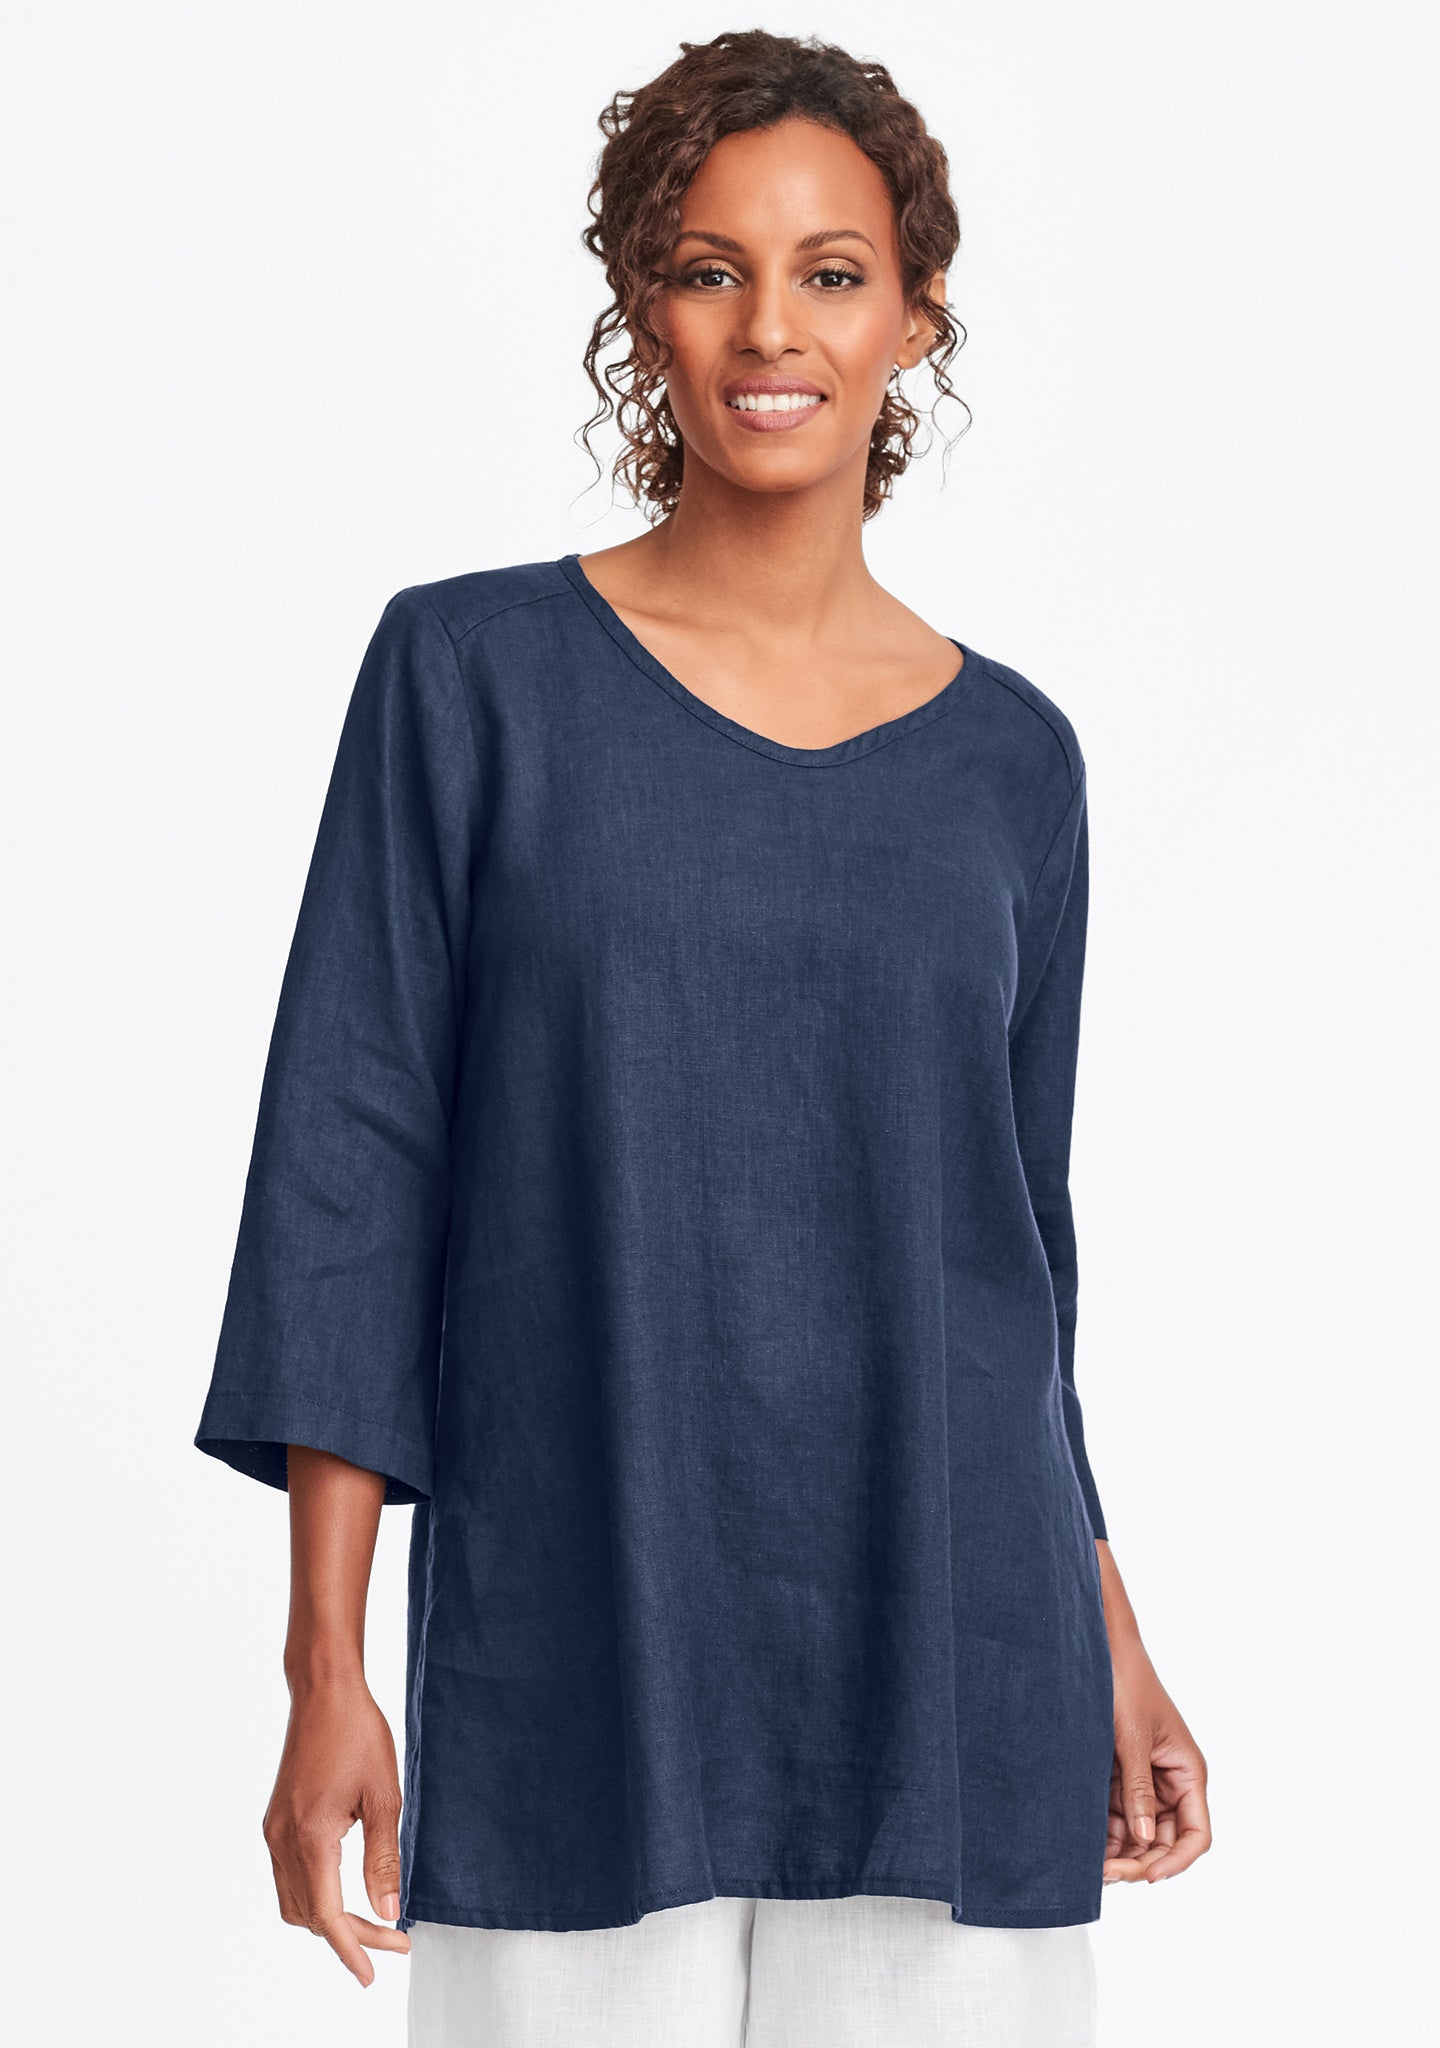 dreamy top linen shirt blue